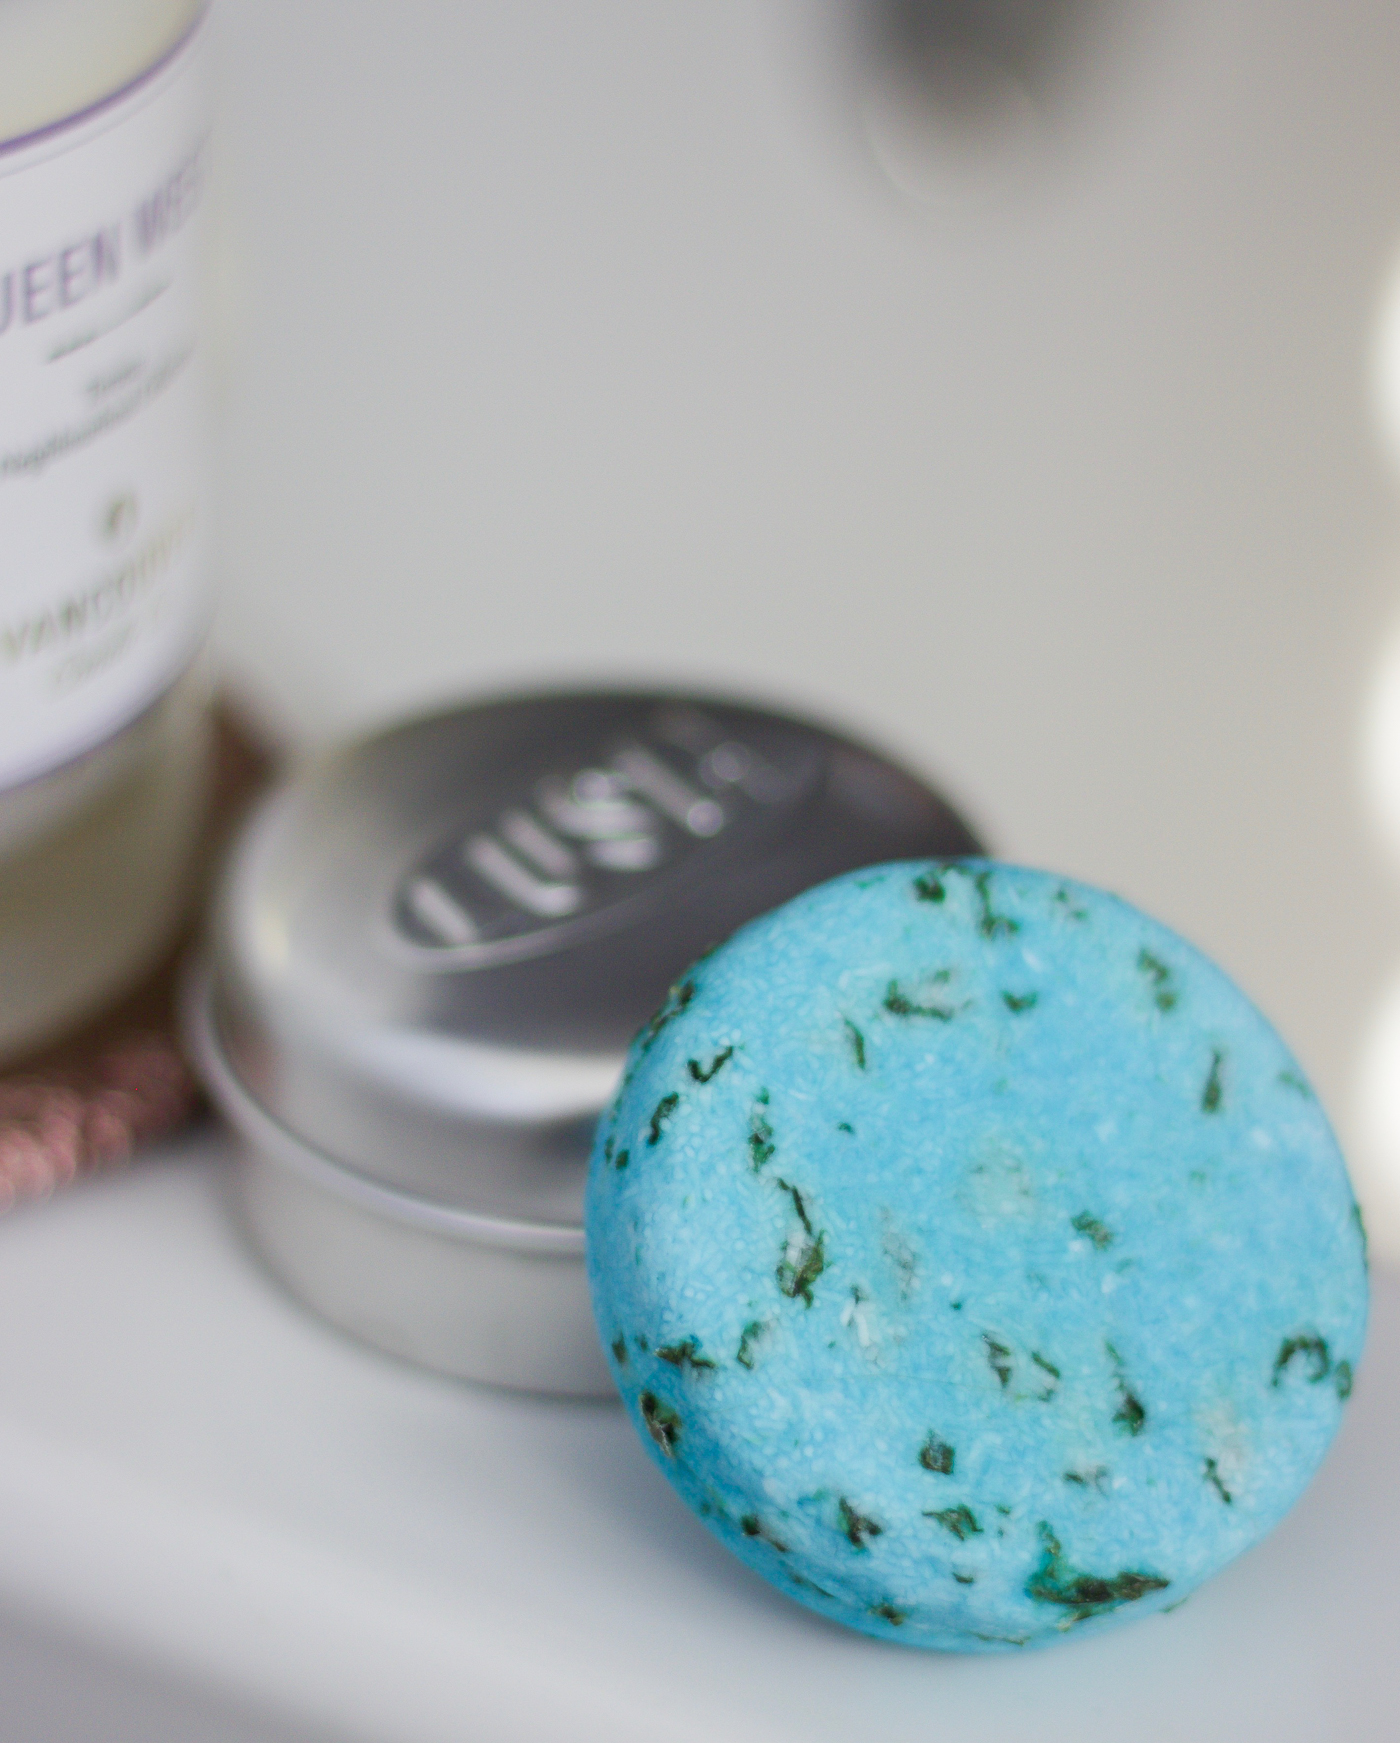 Review of the Seanik Shampoo Bar from LUSH to help with soft water